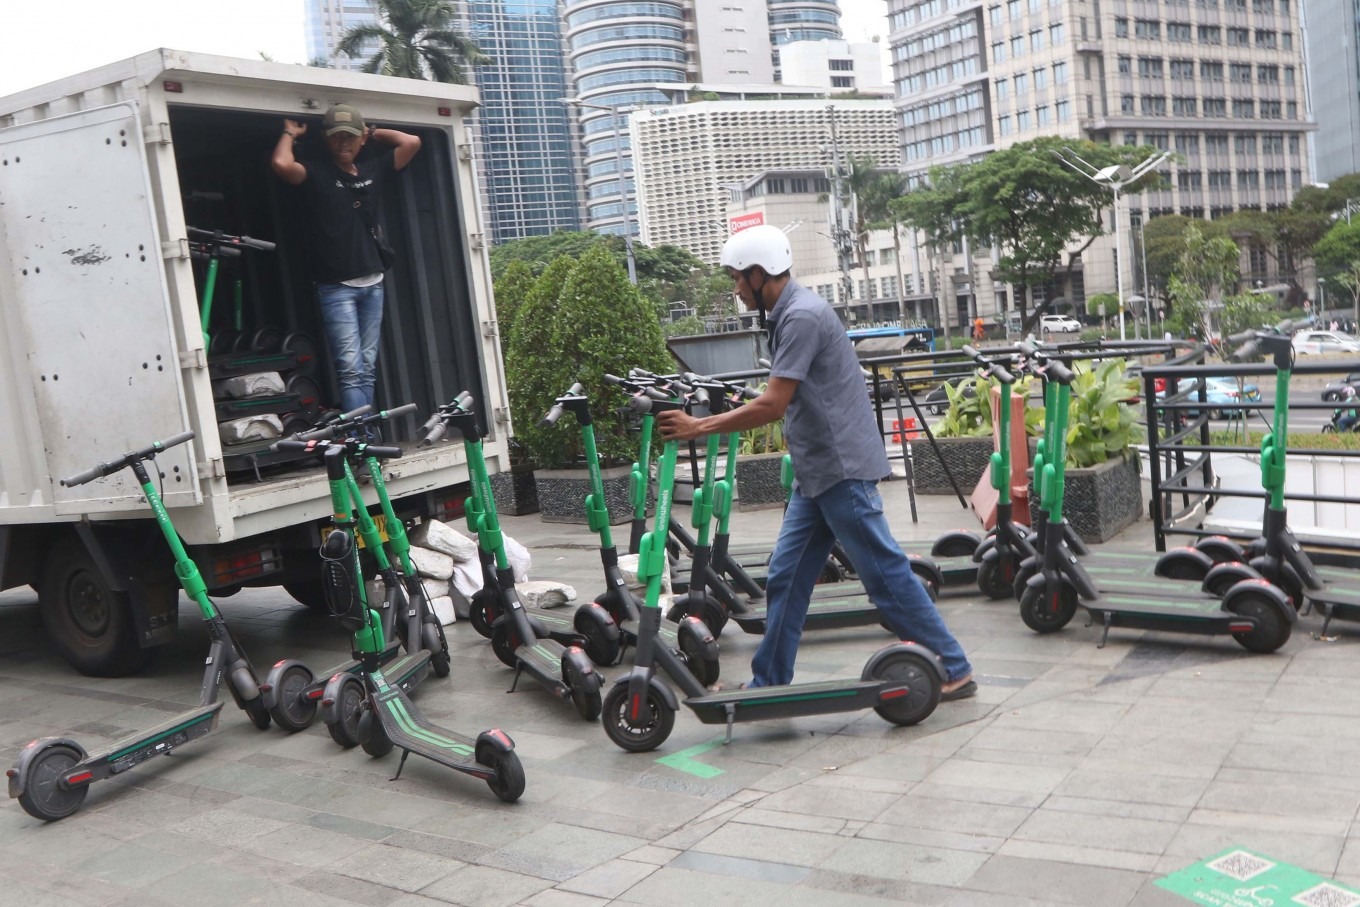 Transportation Ministry urges local e-scooter regulation as popularity grows